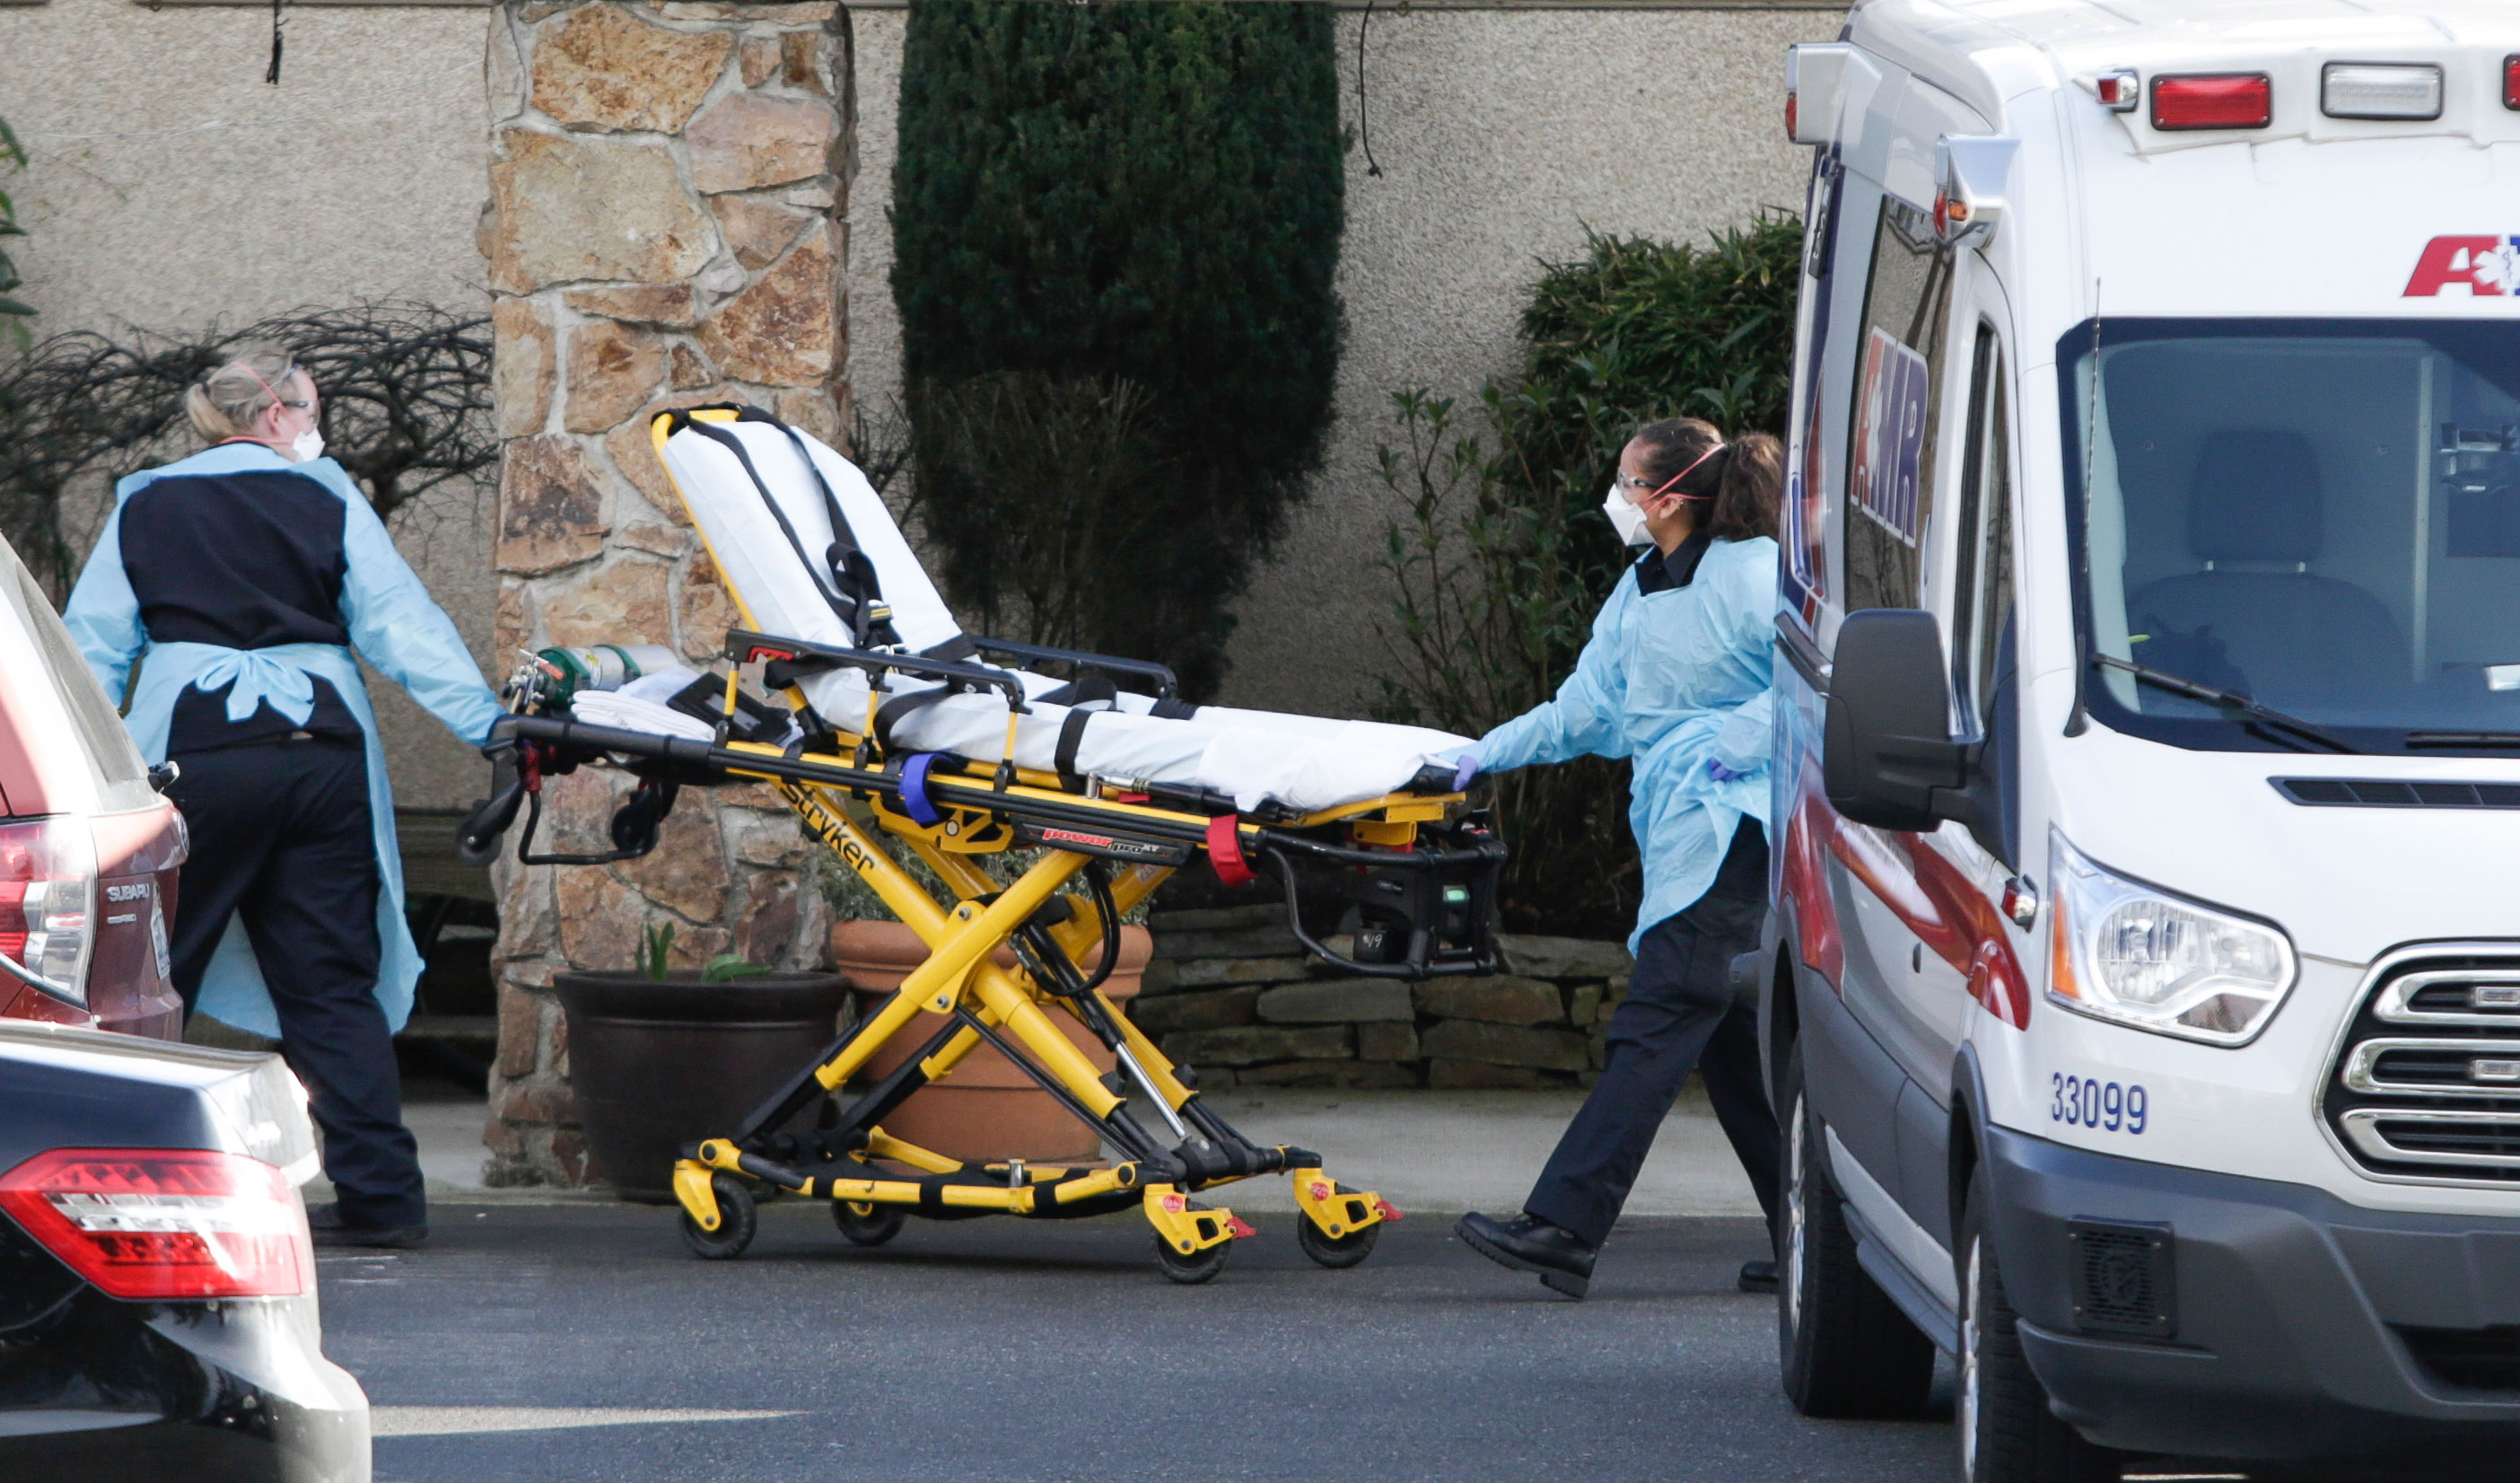 Medical workers take a stretcher into the Life Care Center of Kirkland in Washington on February 29.